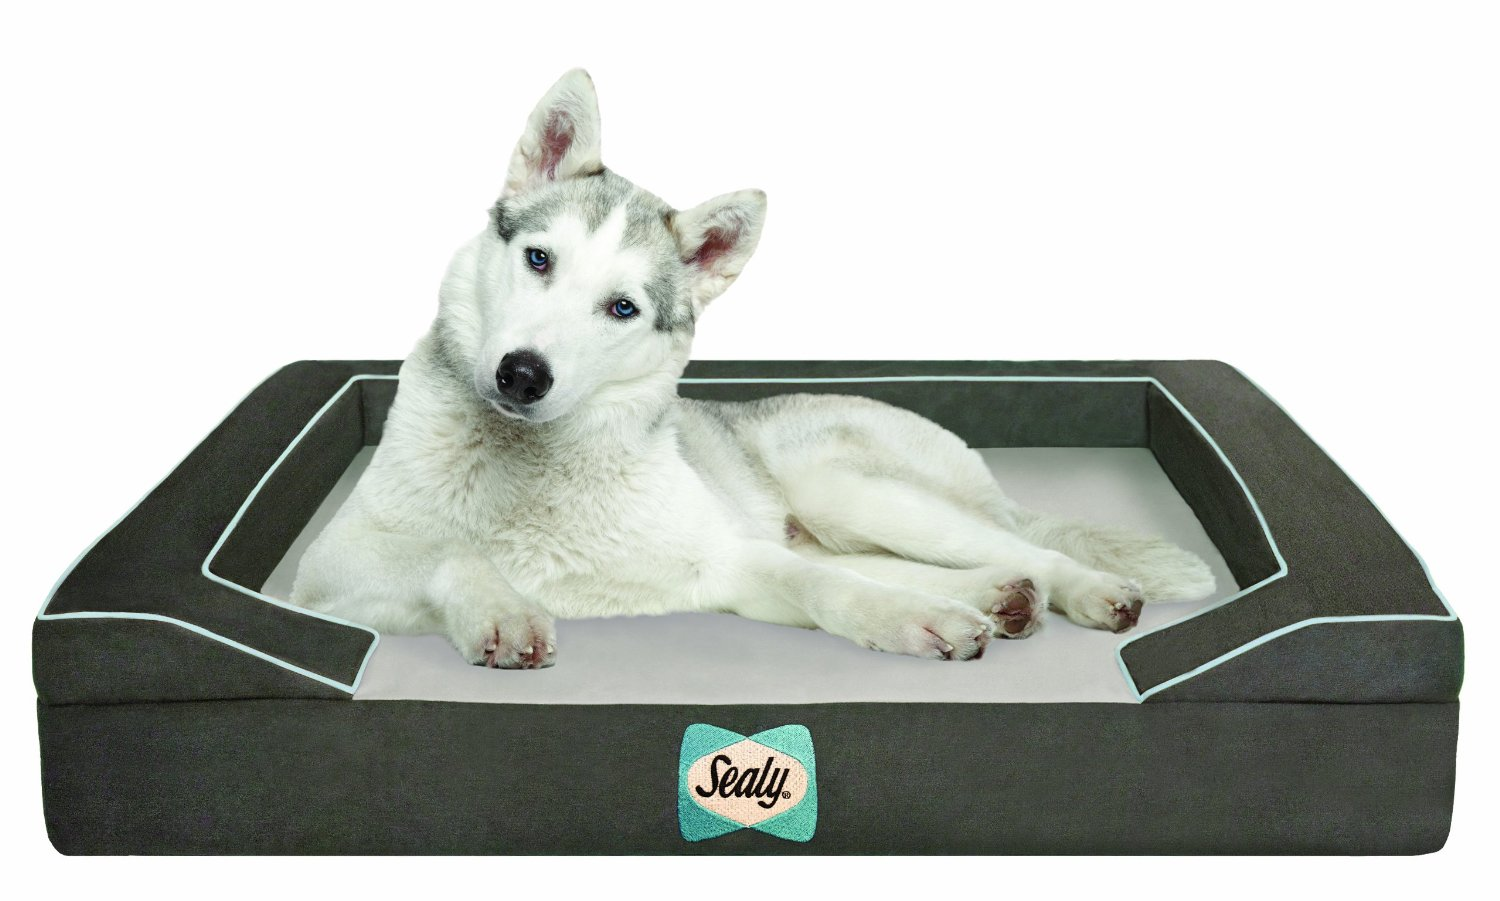 Total Fab Luxury amp Designer Dog Beds For Small And Large Dogs